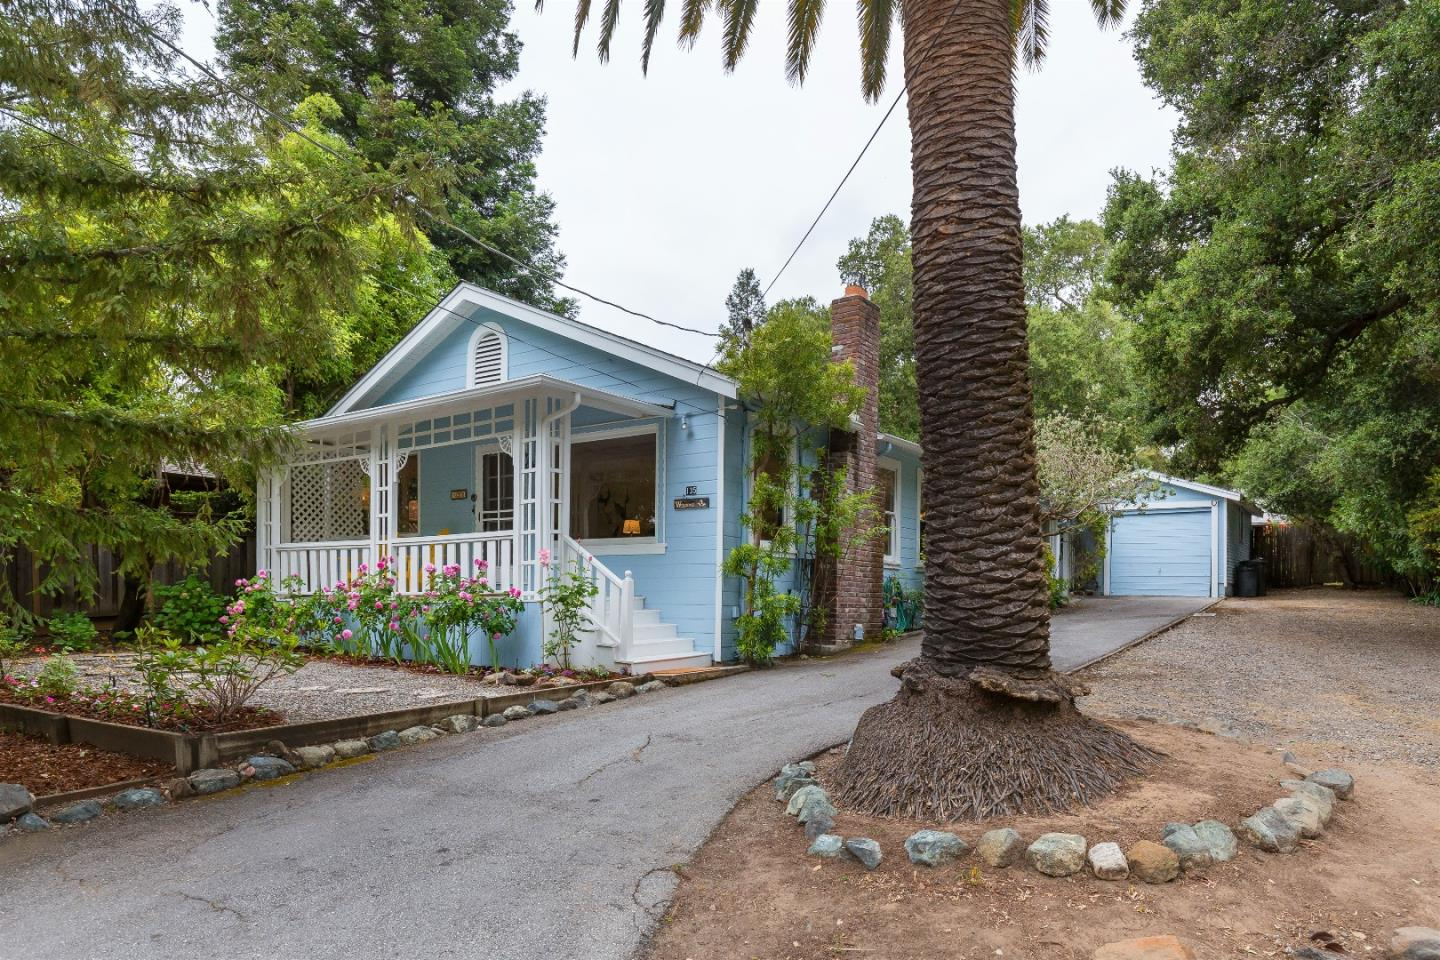 Additional photo for property listing at 135 Alta Vista Rd  WOODSIDE, CALIFORNIA 94062